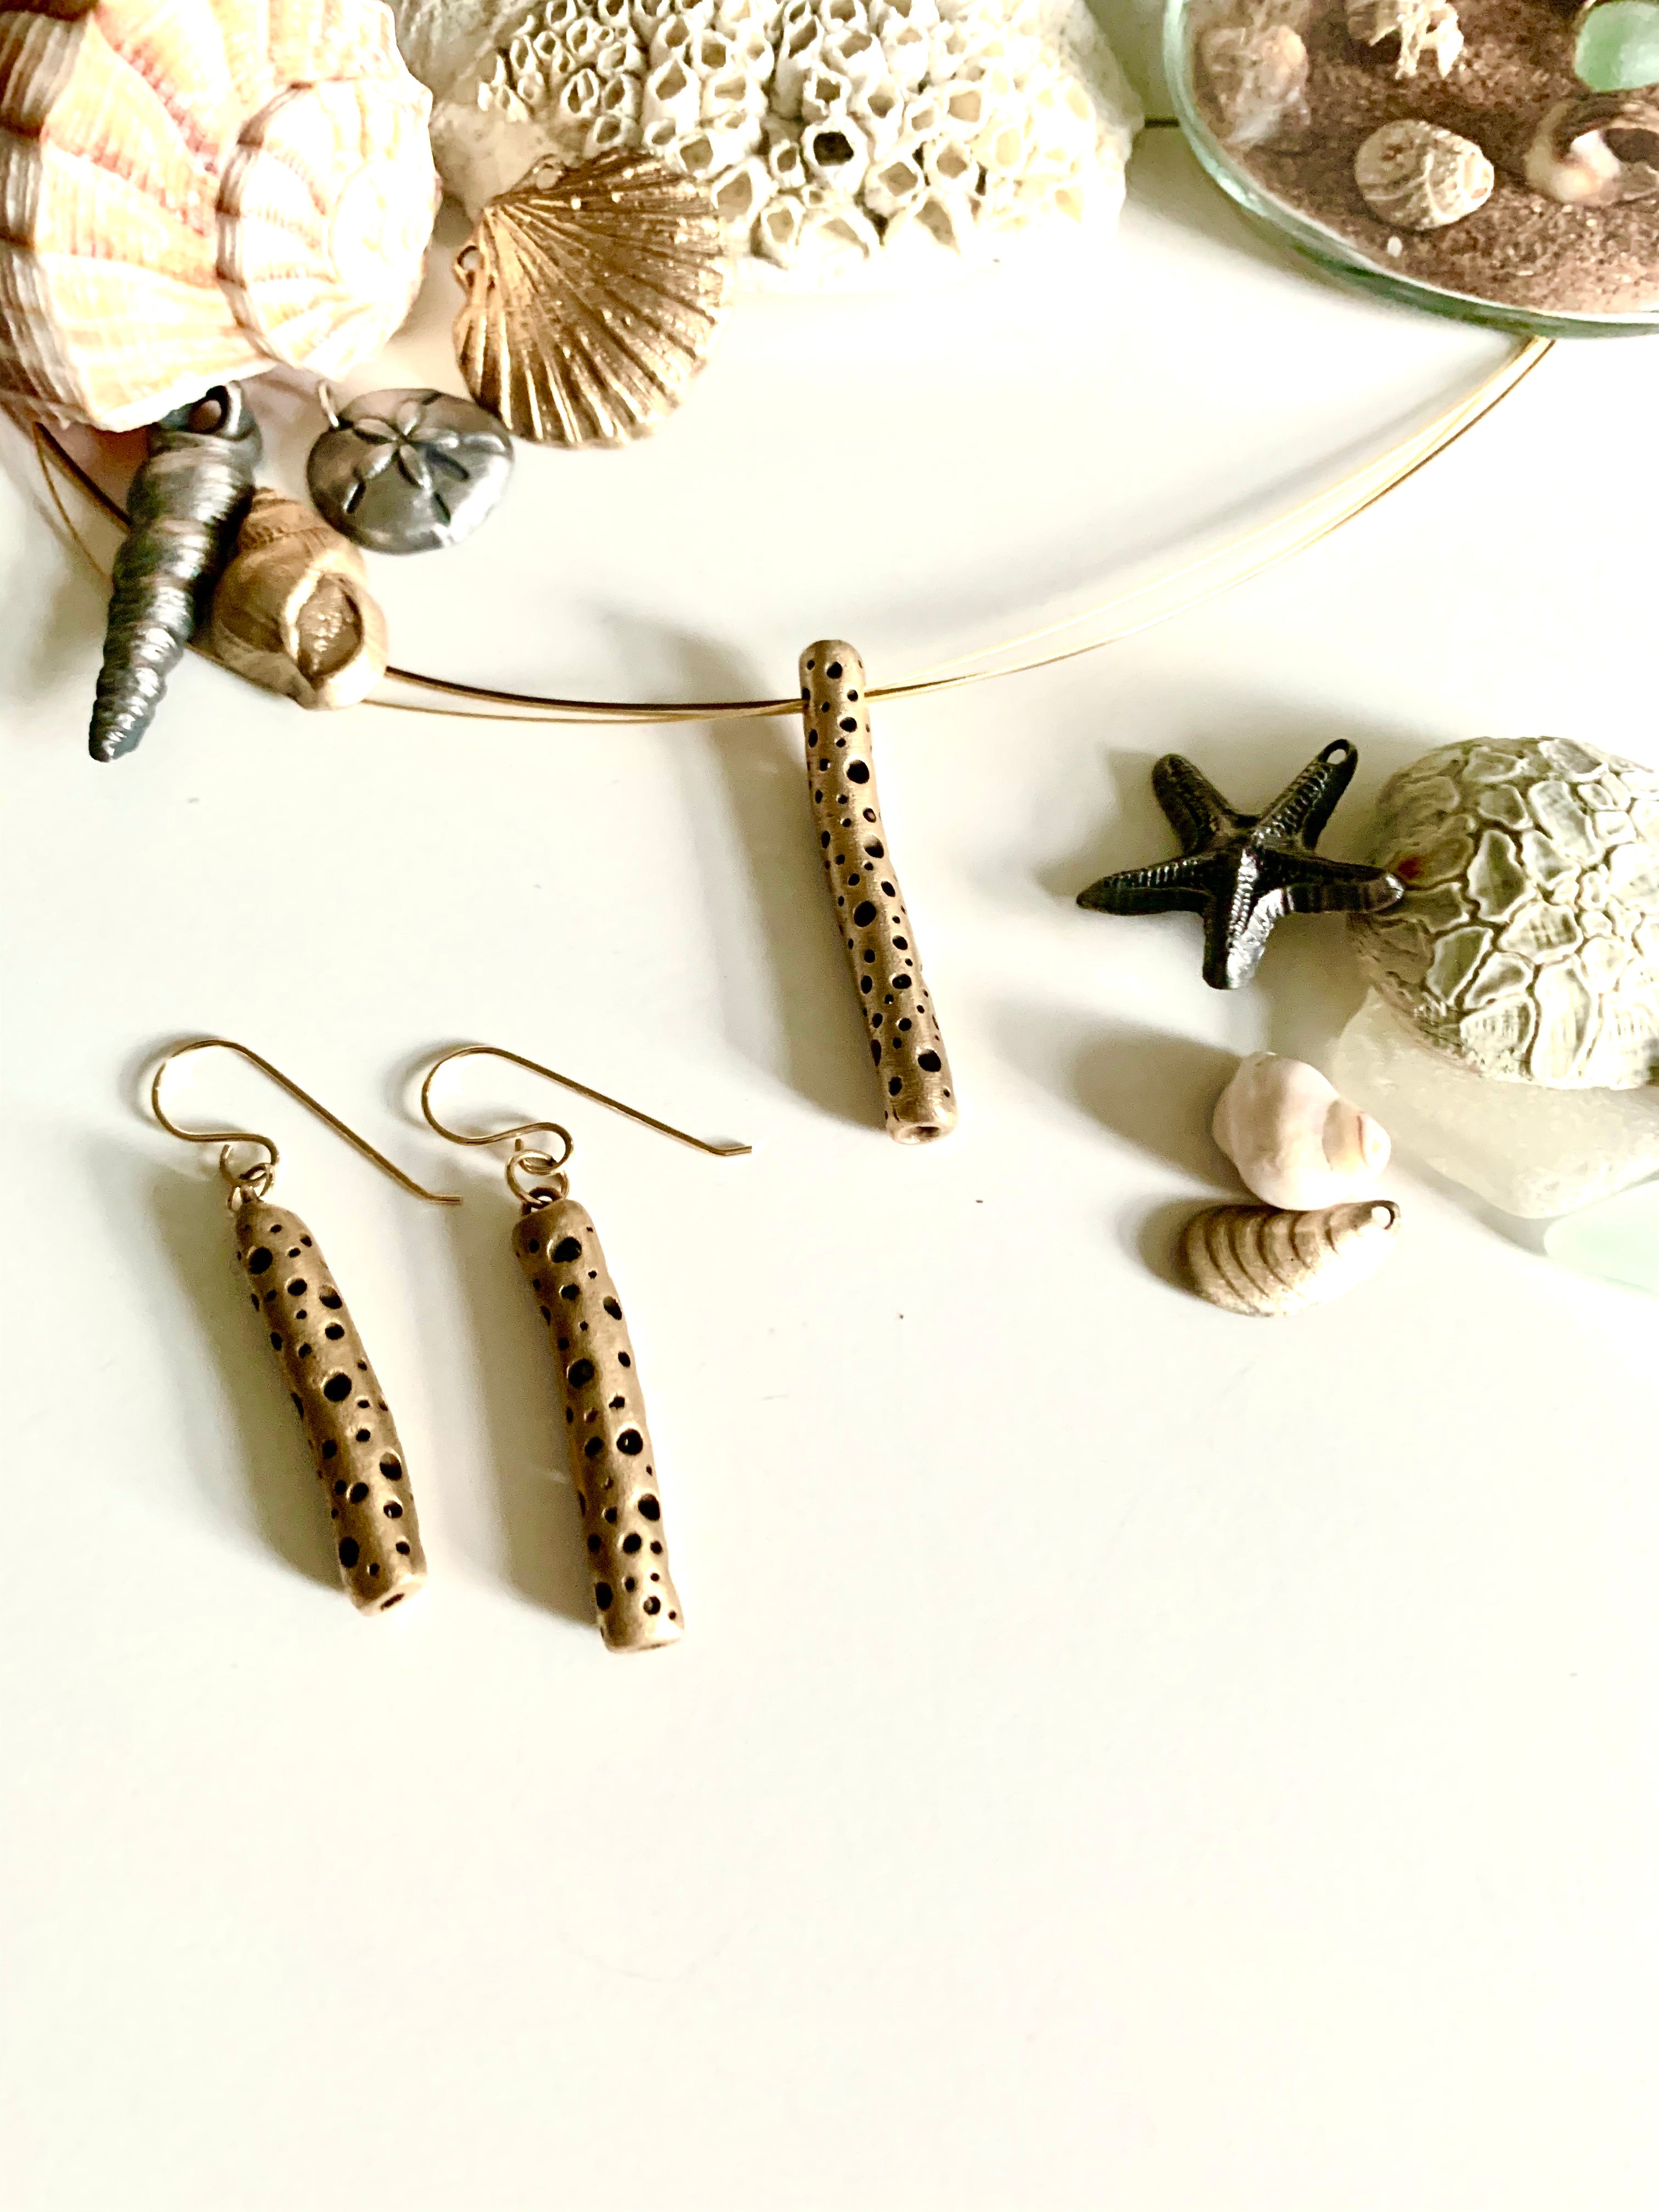 Sculptural bronze artisan made jewelry